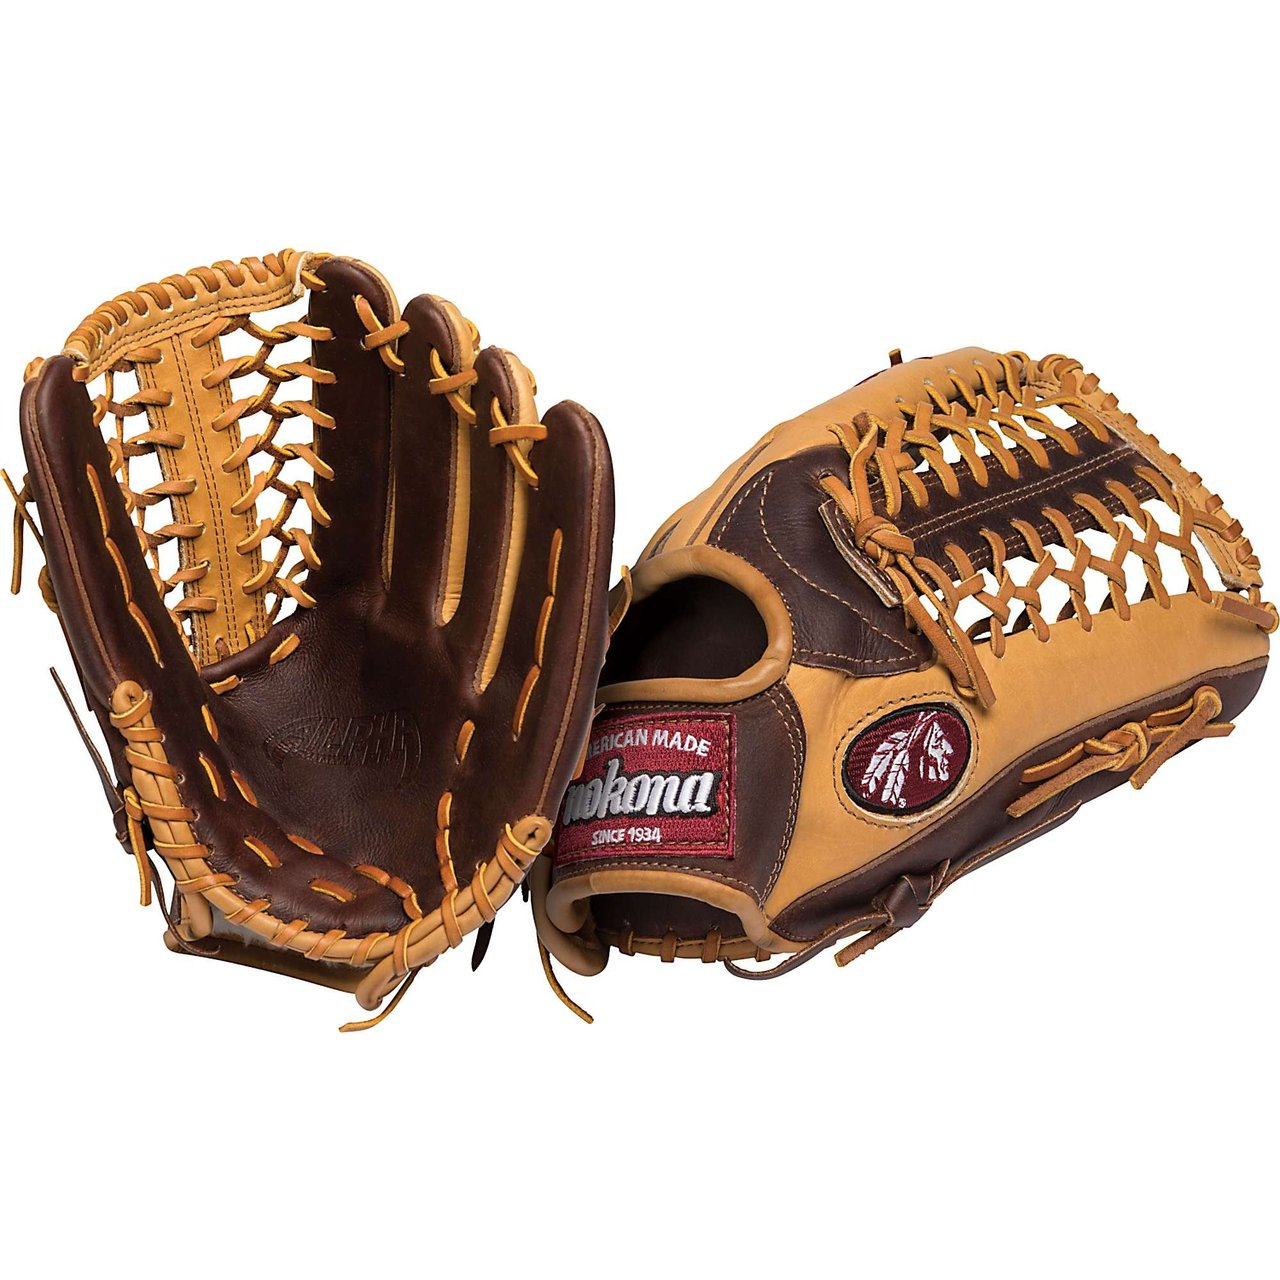 Nokona Alpha Series 12.75 inch Outfield Baseball Glove with Trap Web. 12.75 inch outfield pattern. Modified Trap Web With Open Back. Alpha Leather Scheme with Buffalo and Stampede Leather. Nolera Padding System. Genuine Shearling Cuff. Weight 645g. Handmade in the USA. One year warranty. AB1275M. Since 1934, Nokona has been producing ball gloves for America's pastime right here in the United States. Made with top-grain American hides provided by American ranchers, their leathers are tanned in the USA to Nokona's specifications. Nokona gloves are still produced in the very same small town in Texas, where Nokona started in the 1920s. They are made by Americans who carefully cut, stamp, stitch, lace, and embroider each glove by hand. Each Nokona has its own unique identity and feel, based on the careful selection of leather per part and its hand-crafted construction. Nokona puts classic American workmanship into every glove, using special techniques developed over the past 80 years. This ensures that the highest American and Nokona standards are met so that you can wear your glove with great confidence and pride.